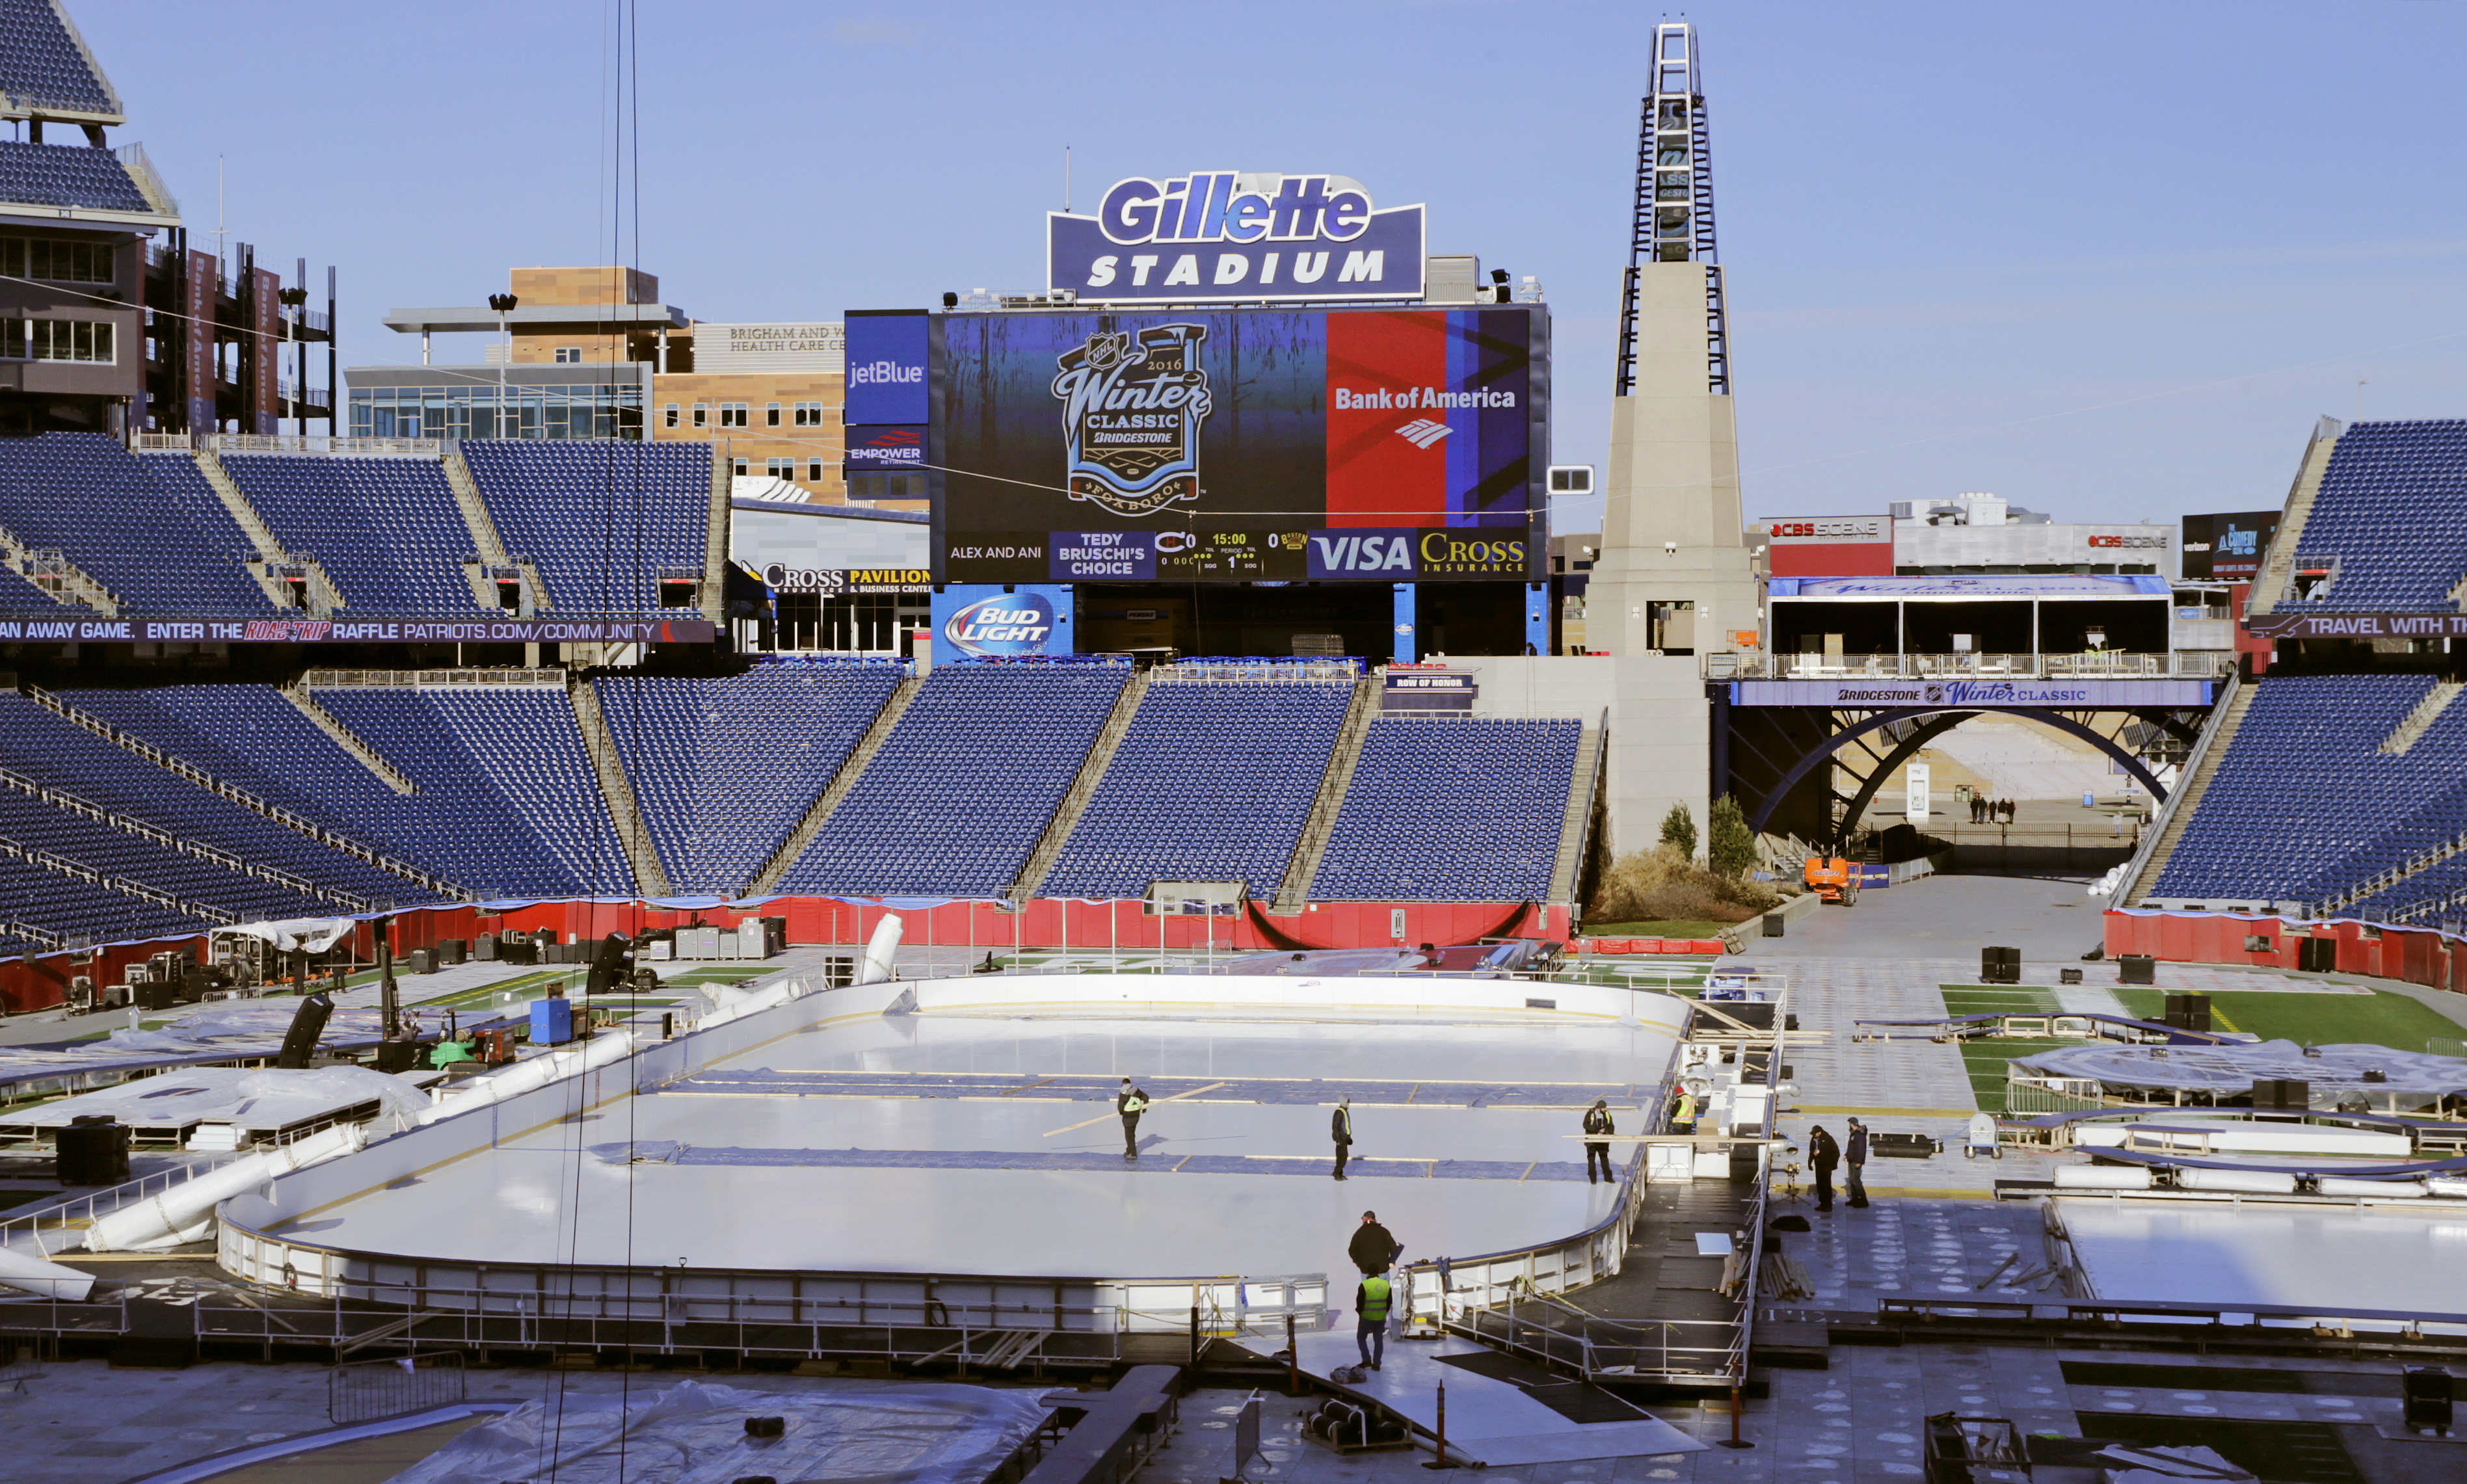 Workers prepare the Winter Classic hockey rink on the football field of Gillette Stadium in Foxborough, Mass., Monday, Dec. 28, 2015. The Montreal Canadiens face the Boston Bruins in the New Year's Day hockey game. Gillette Stadium is the home of the New